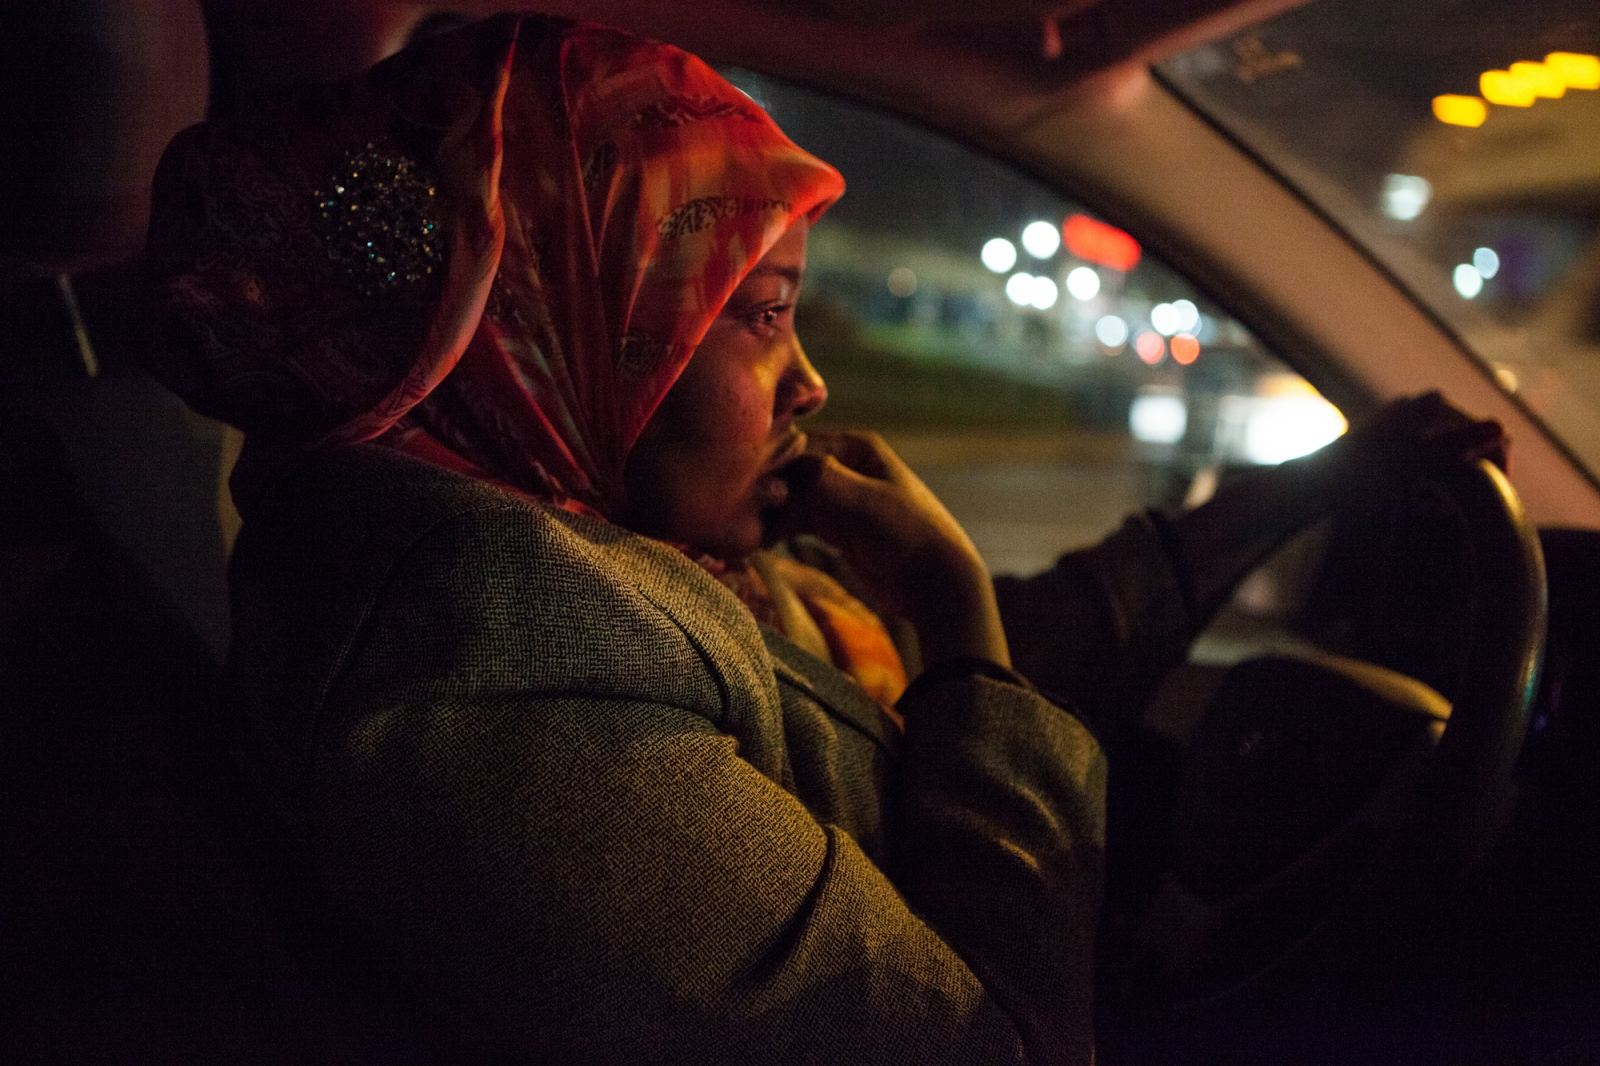 Saciido Shaie rushes to go shopping with her kids and drop them off at home before attending a board-of-directors meeting for her non-profit organization, called the Ummah Project.